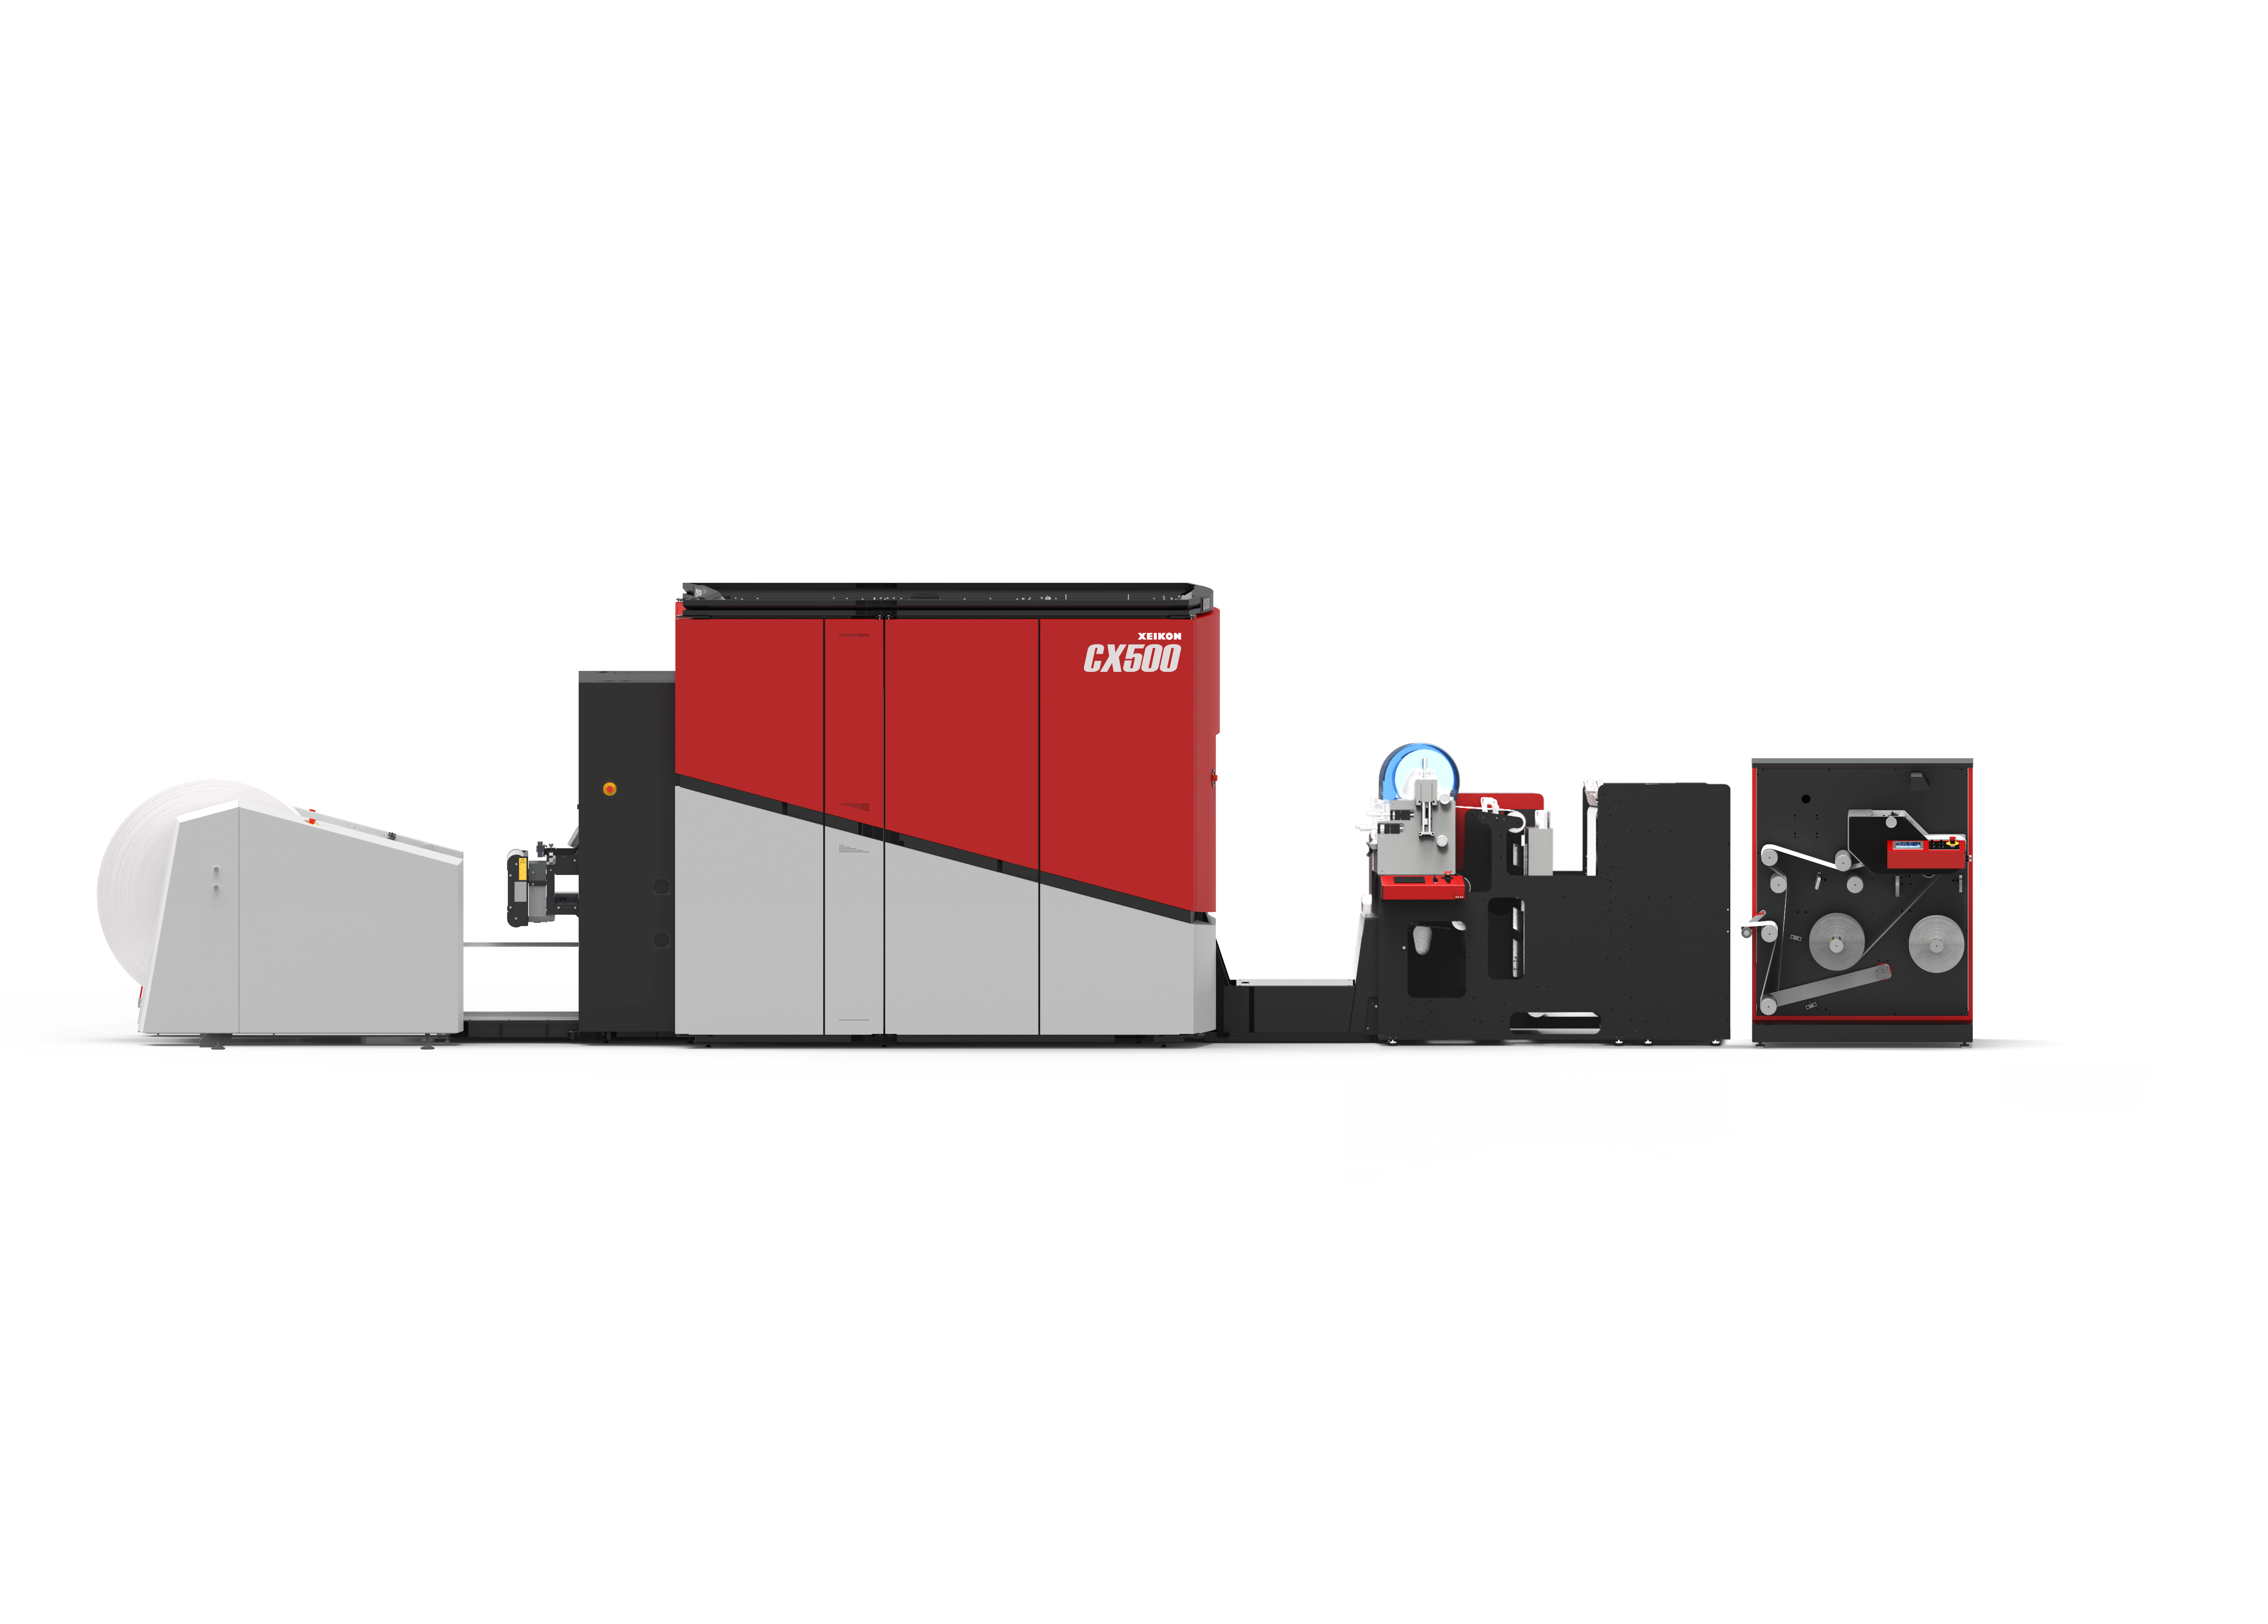 Digital production solution with a Xeikon CX500